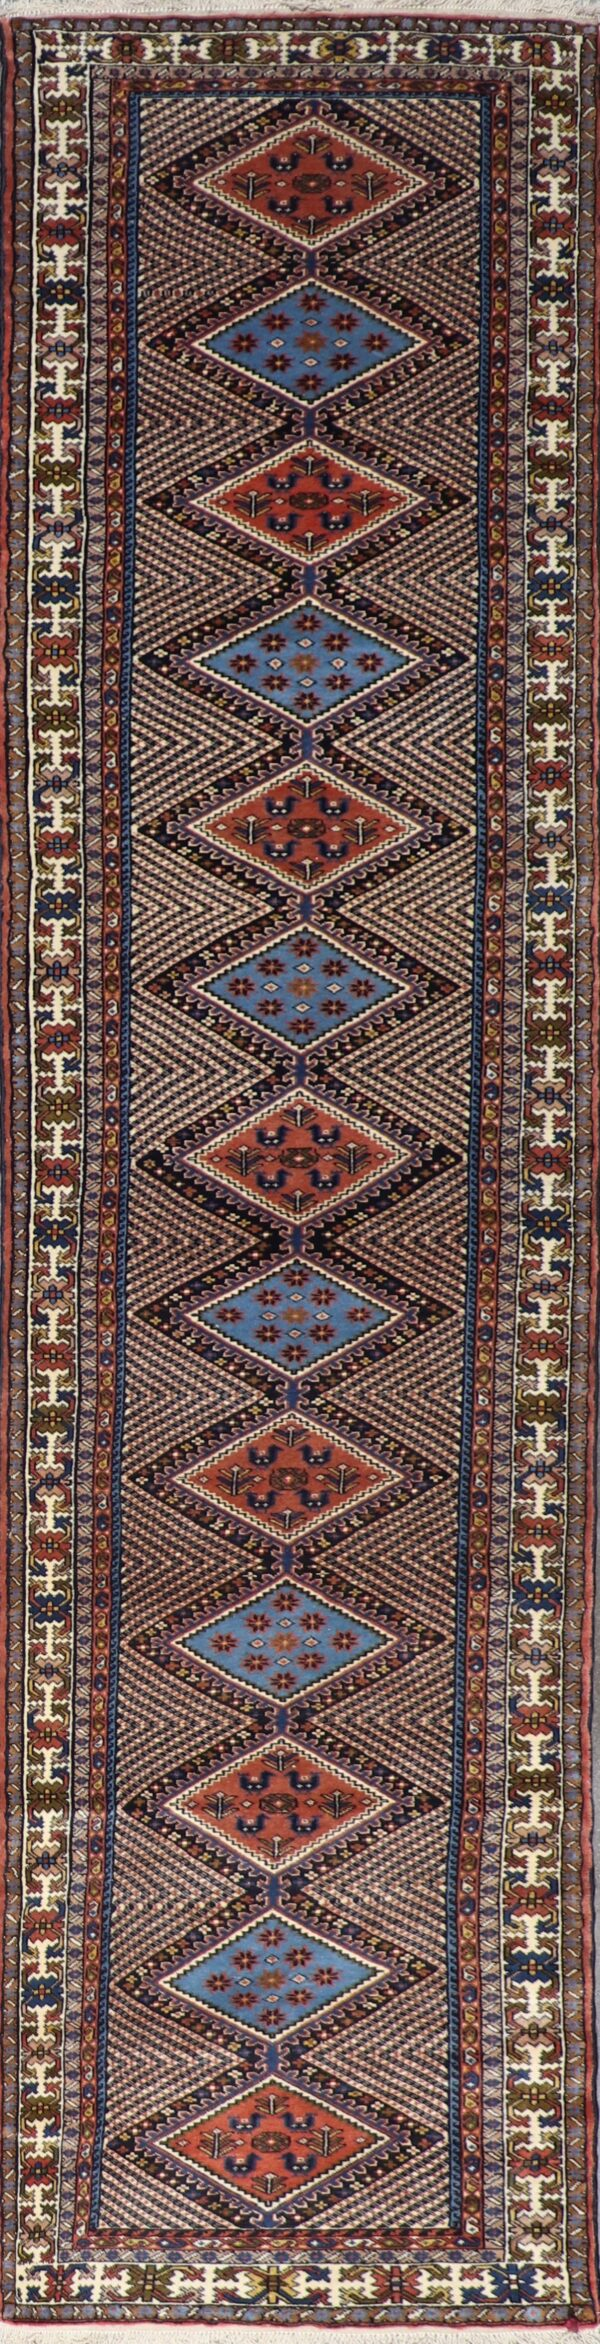 """2'10""""x13' Decorative Brown & Blue Wool Hand-Knotted Rug - Direct Rug Import 